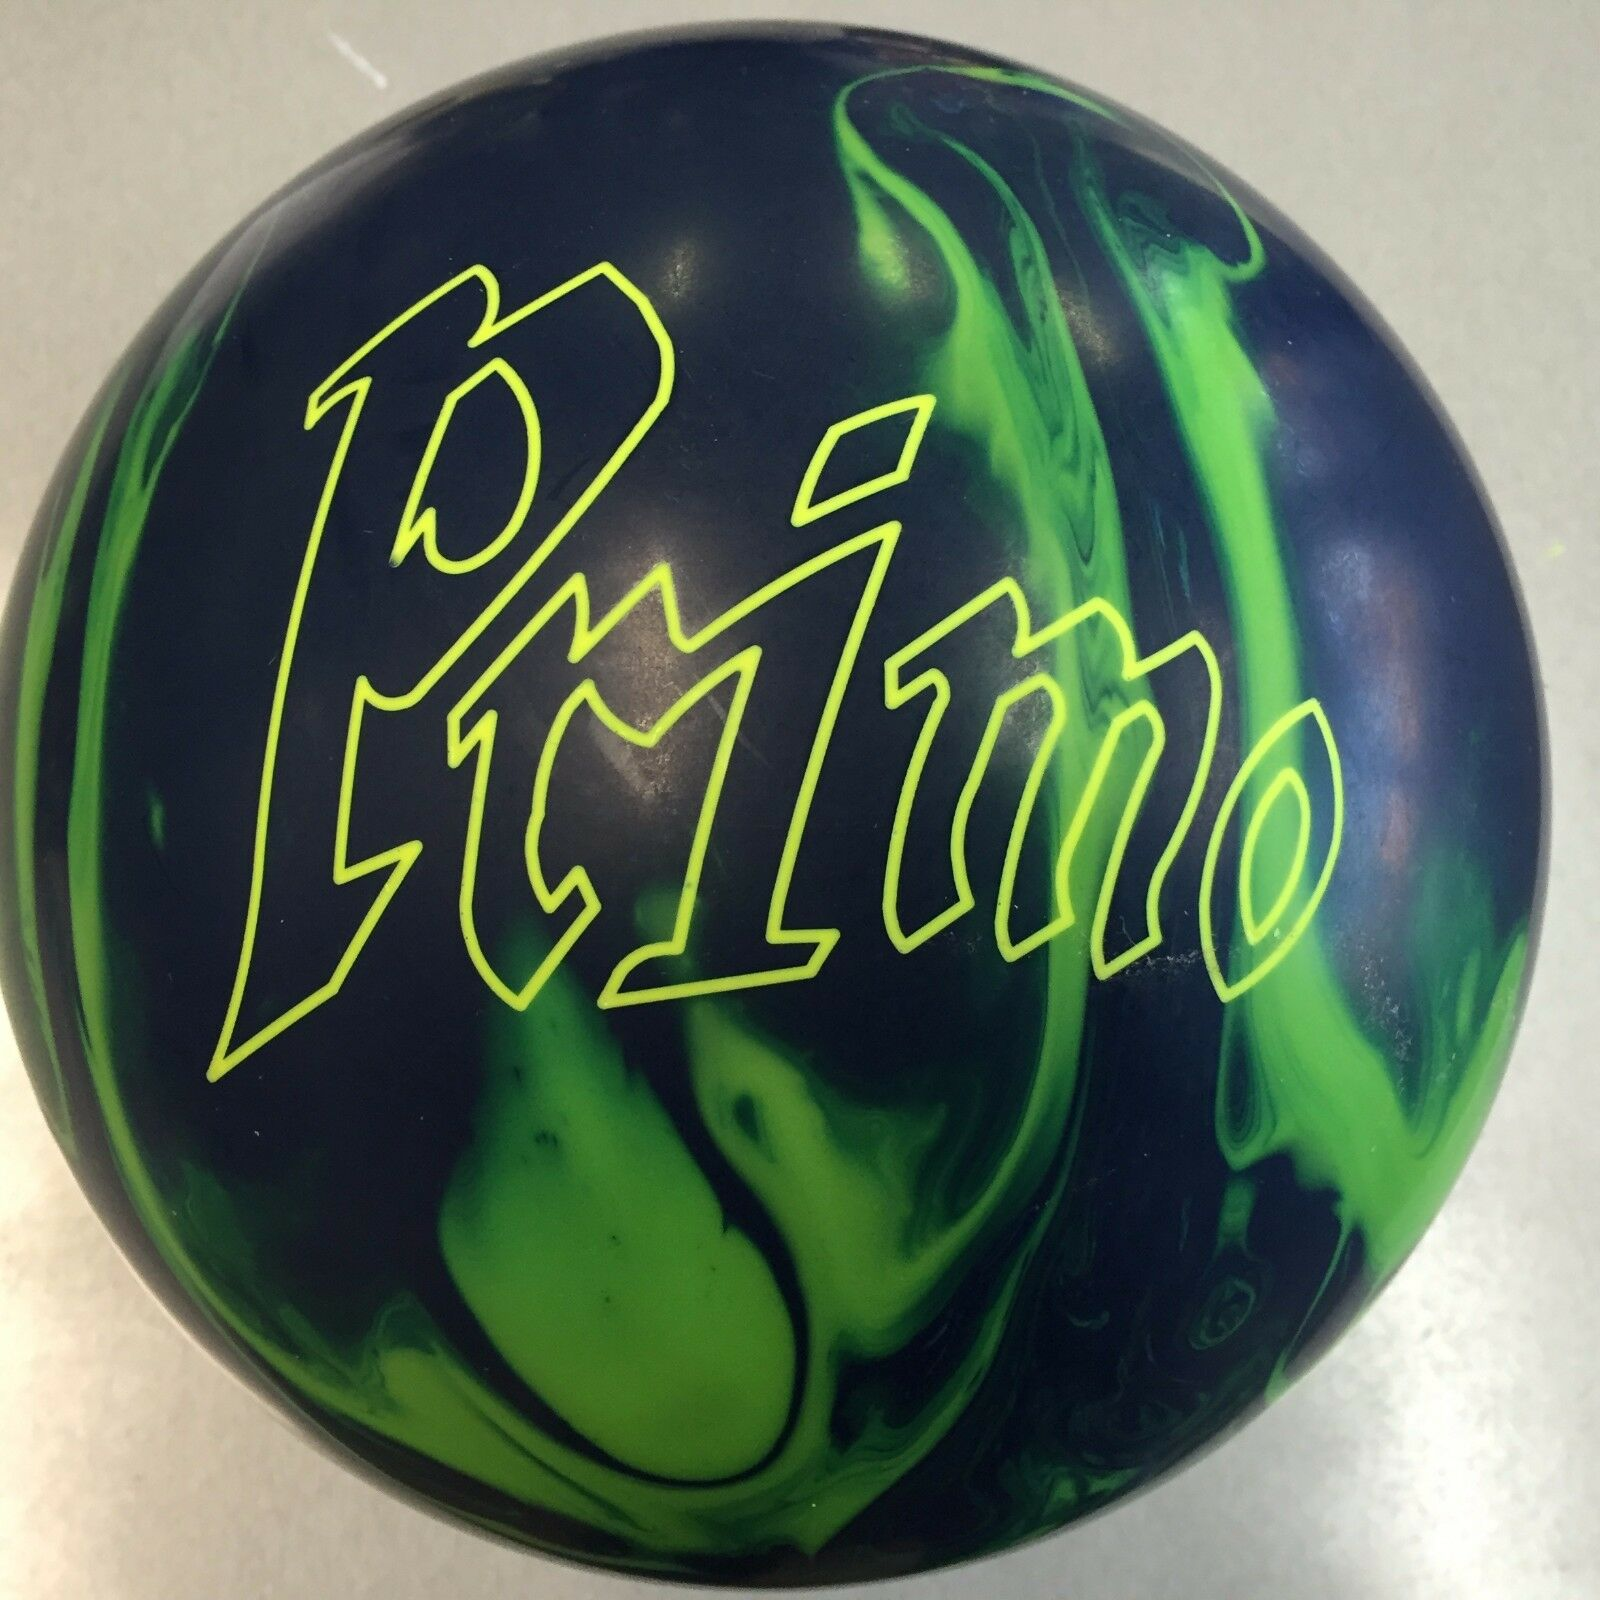 RADICAL PRIMO SOLID  bowling ball  16 LB. 1ST QUALITY  BRAND NEW IN BOX  BALL